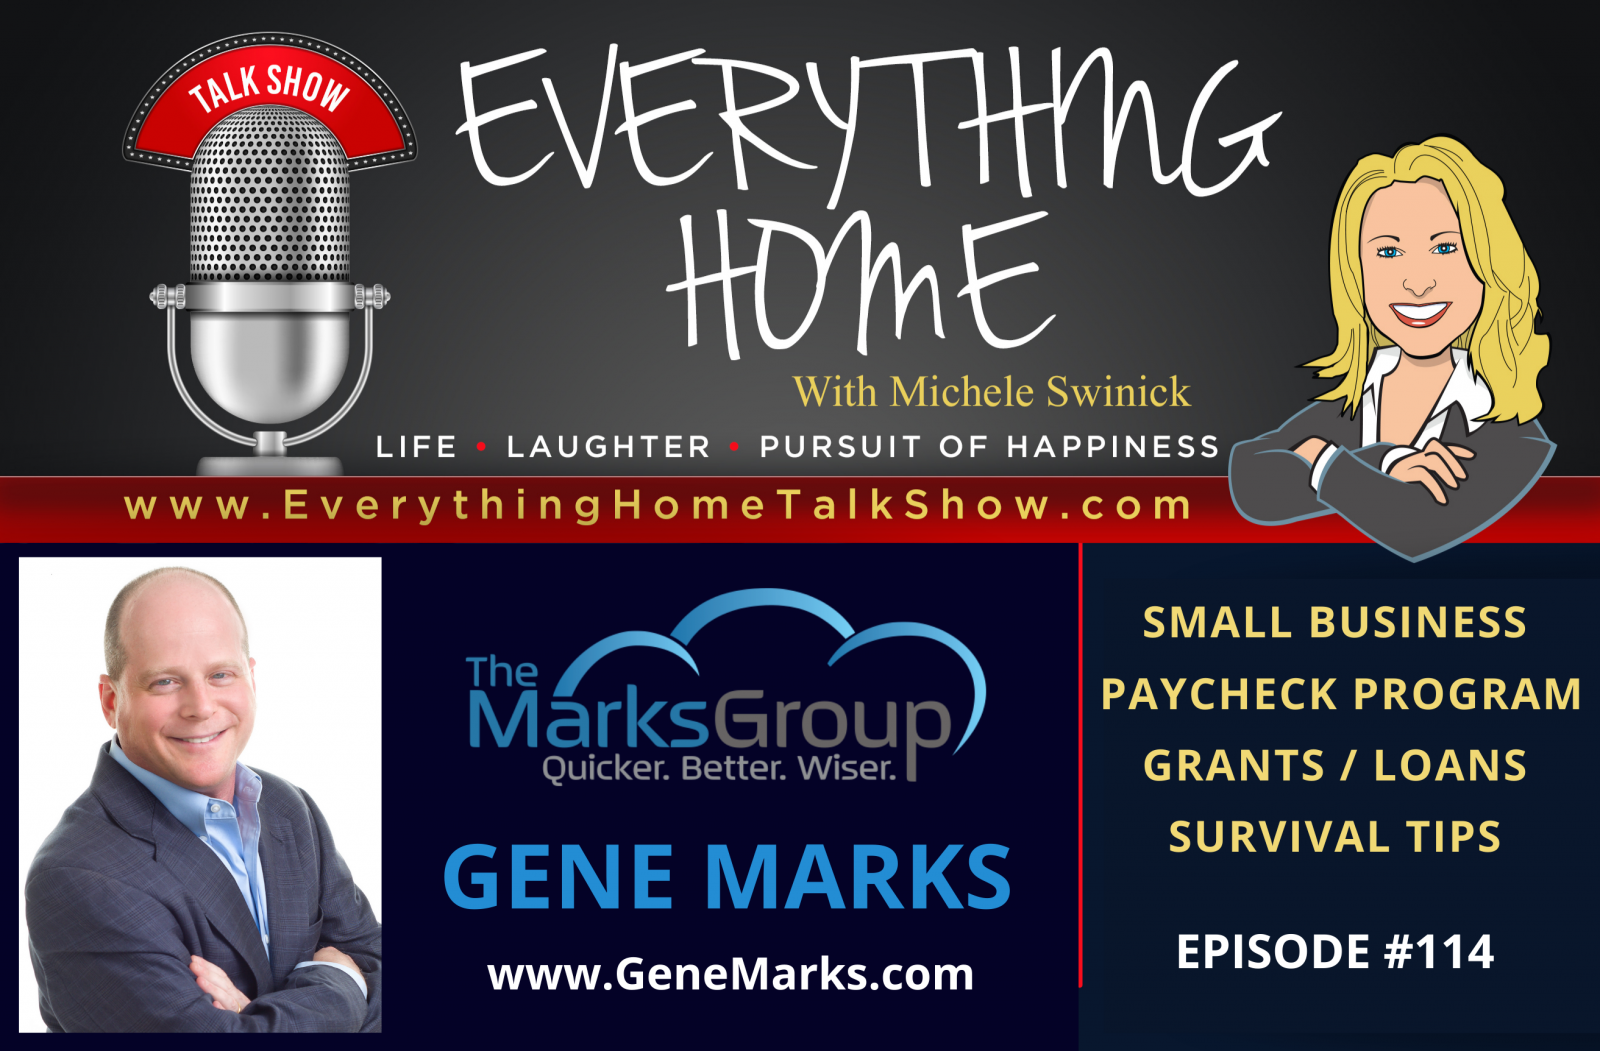 #114 - Small Business Paycheck Program & How To Survive With Expert Gene Marks CPA